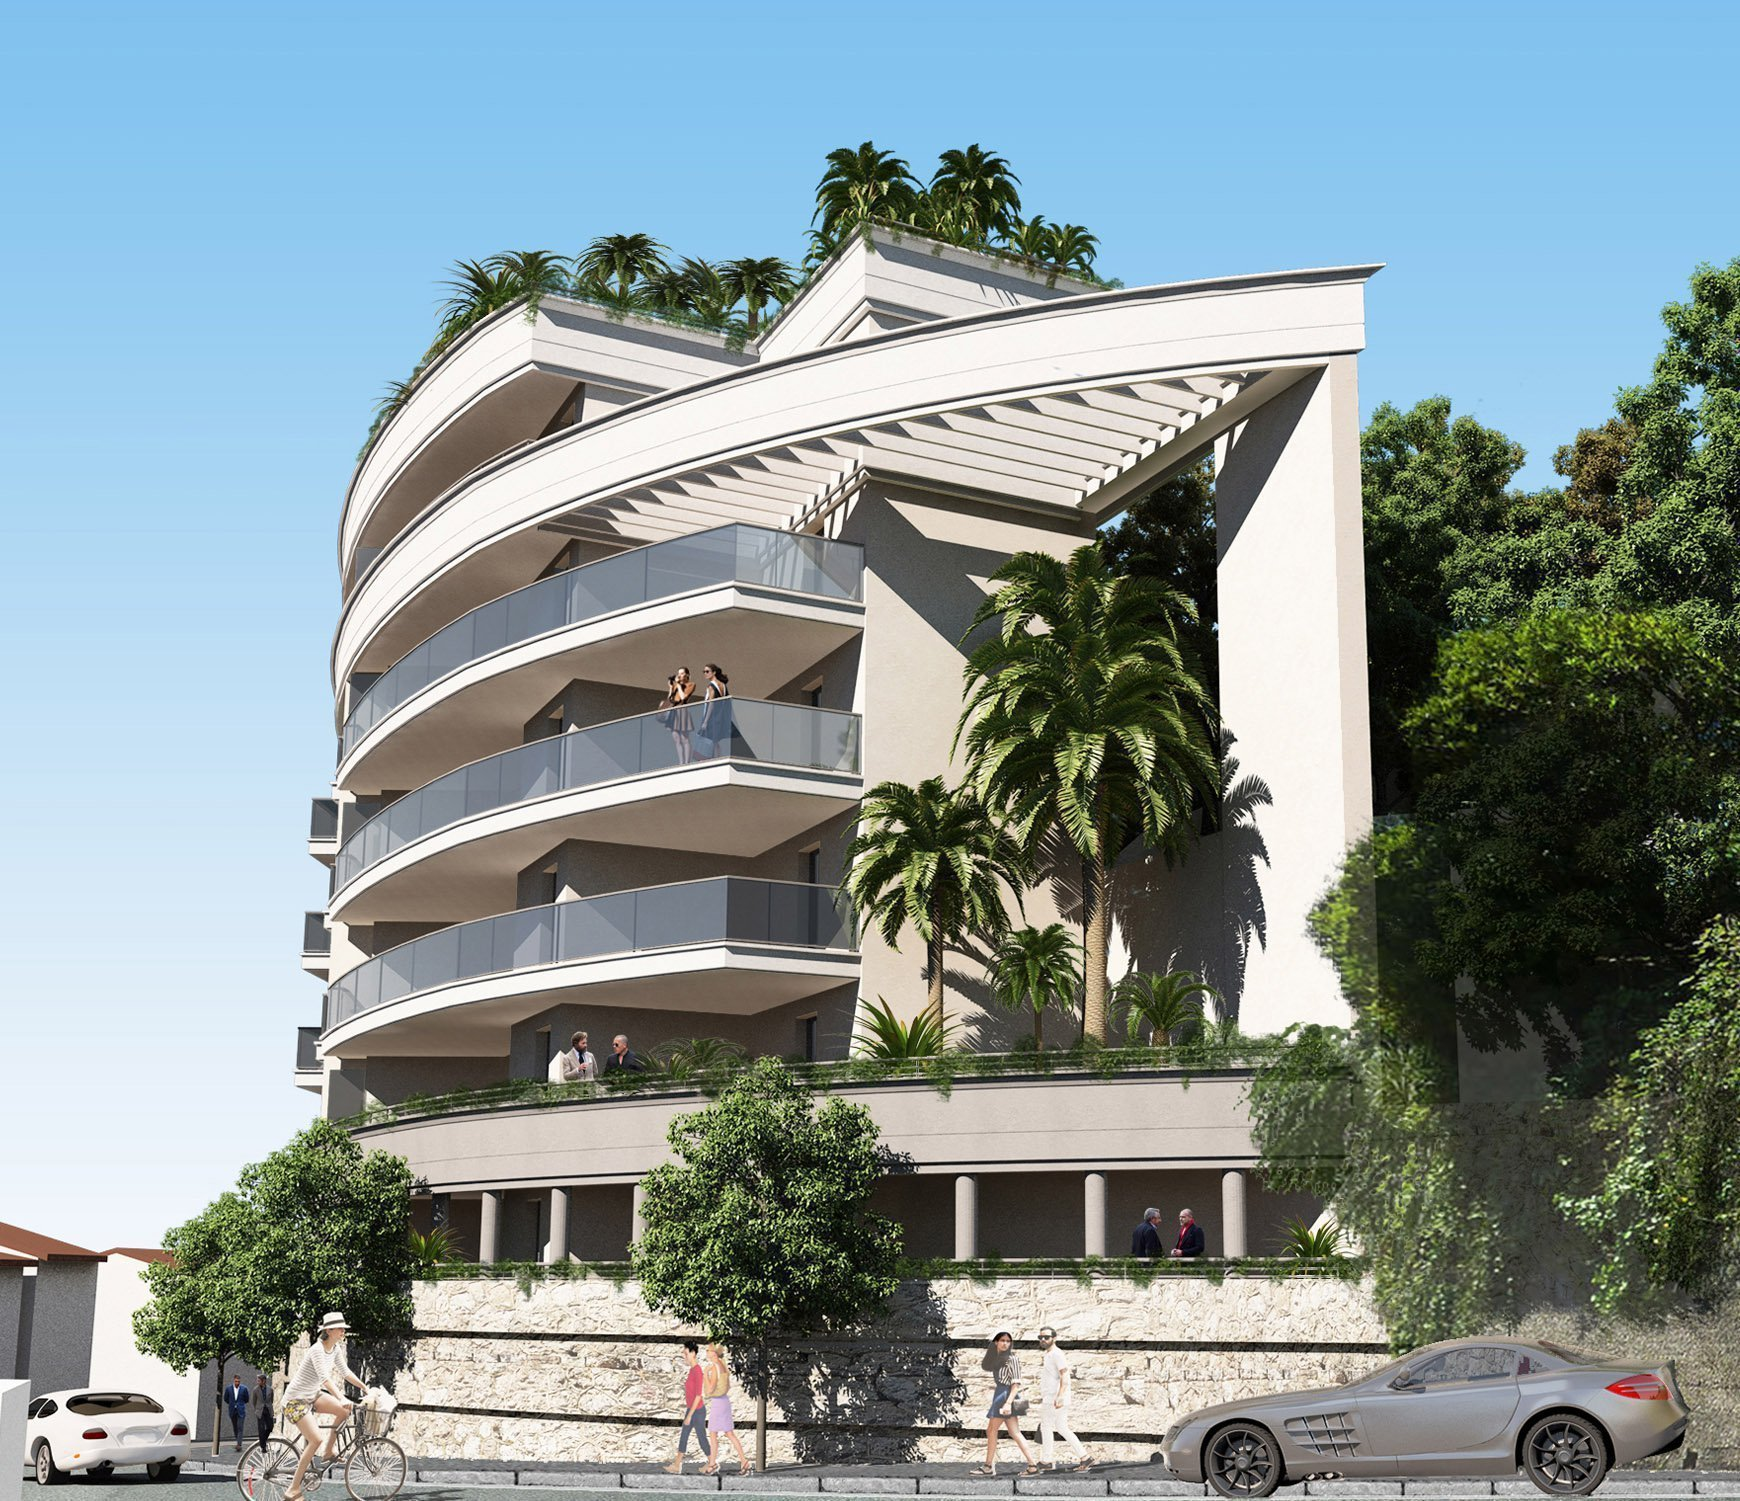 BEAUSOLEIL - Frecnh Riviera - 2 Bed apartment with sea view and large terrace